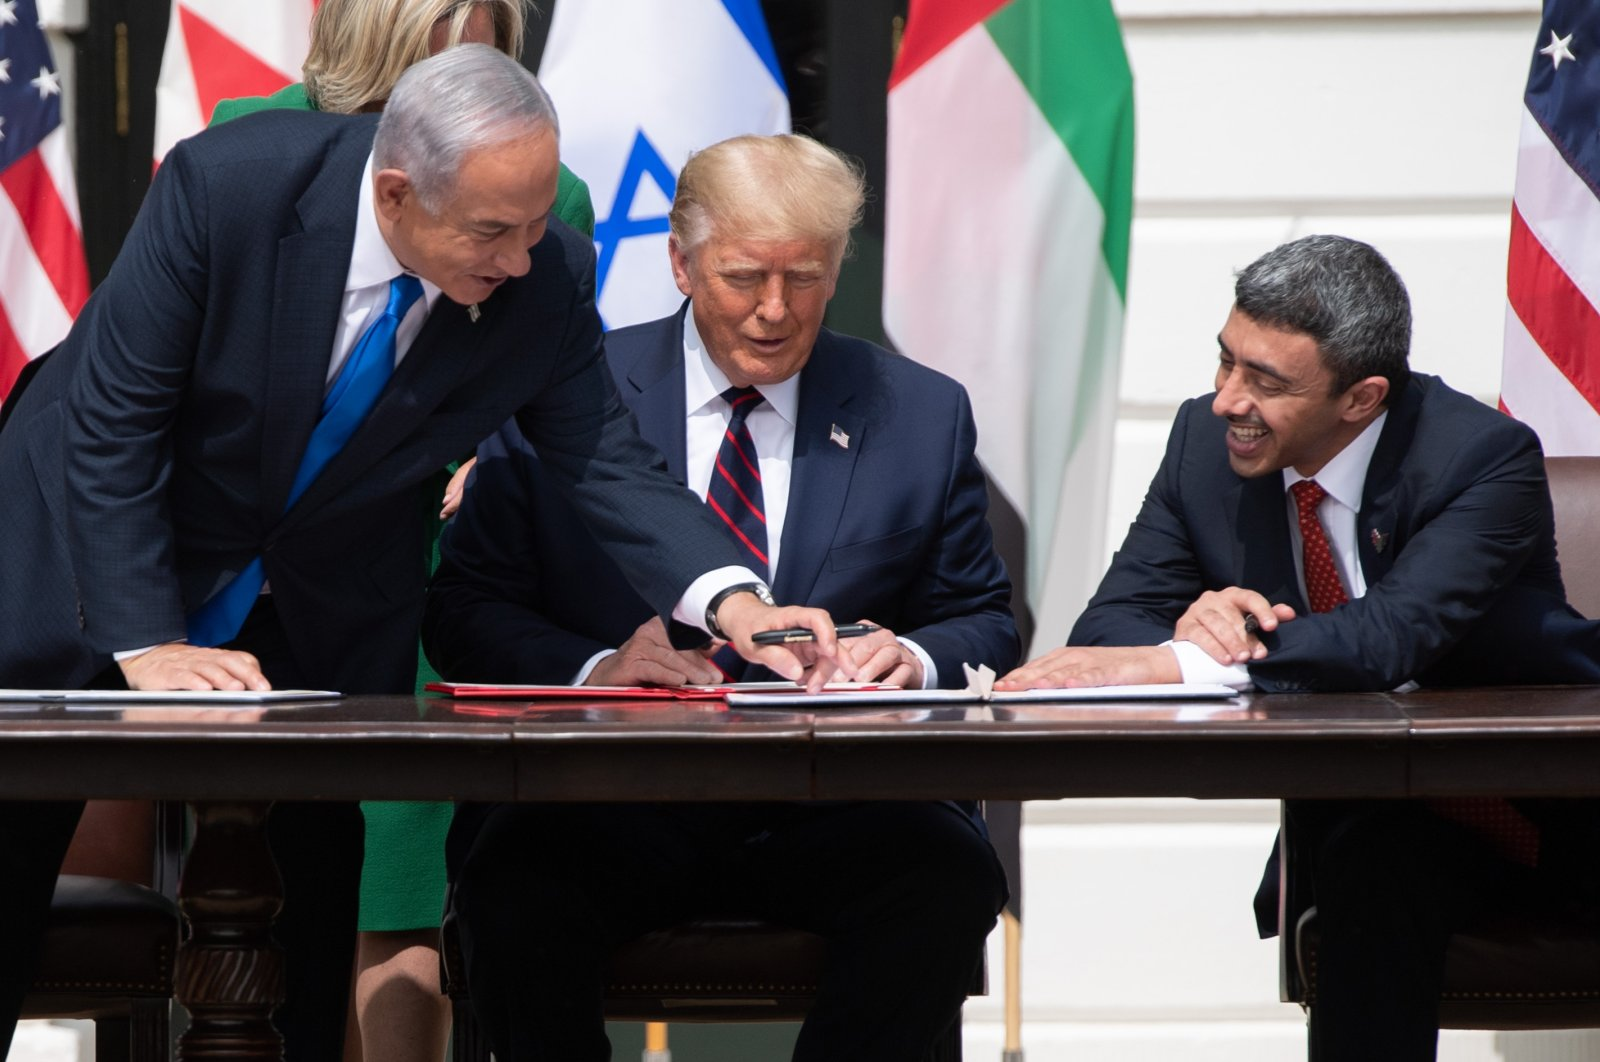 Israeli Prime Minister Benjamin Netanyahu (L), U.S. President Donald Trump, and UAE Foreign Minister Abdullah bin Zayed Al-Nahyan (R) smile as they participate in the signing of the Abraham Accords where the countries of Bahrain and the UAE recognize Israel, at the White House in Washington, D.C., Sept. 15, 2020. (AFP Photo)